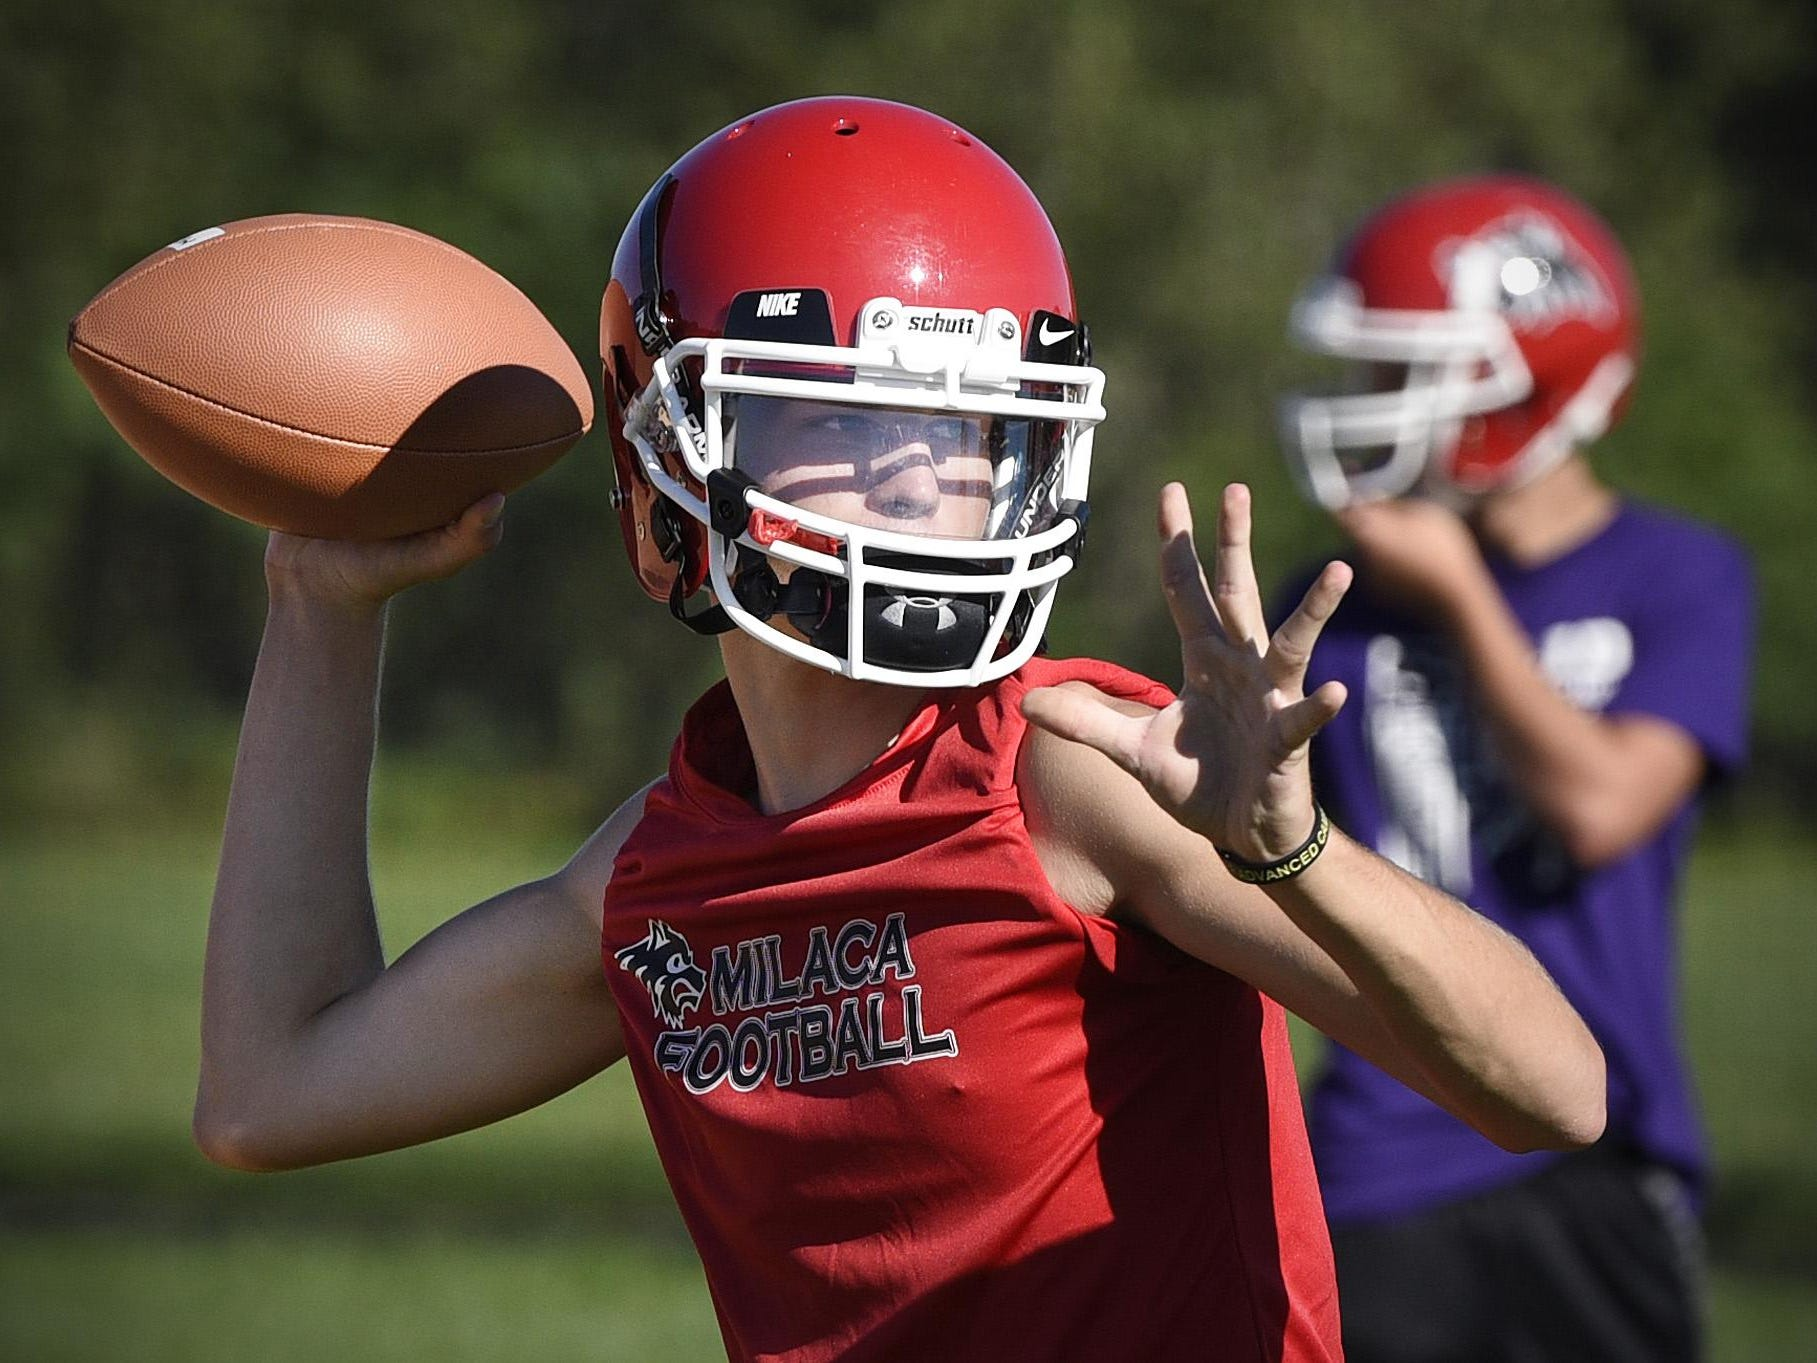 Milaca quarterback Nate Hass threw for 1,662 yards and 13 touchdowns last season.